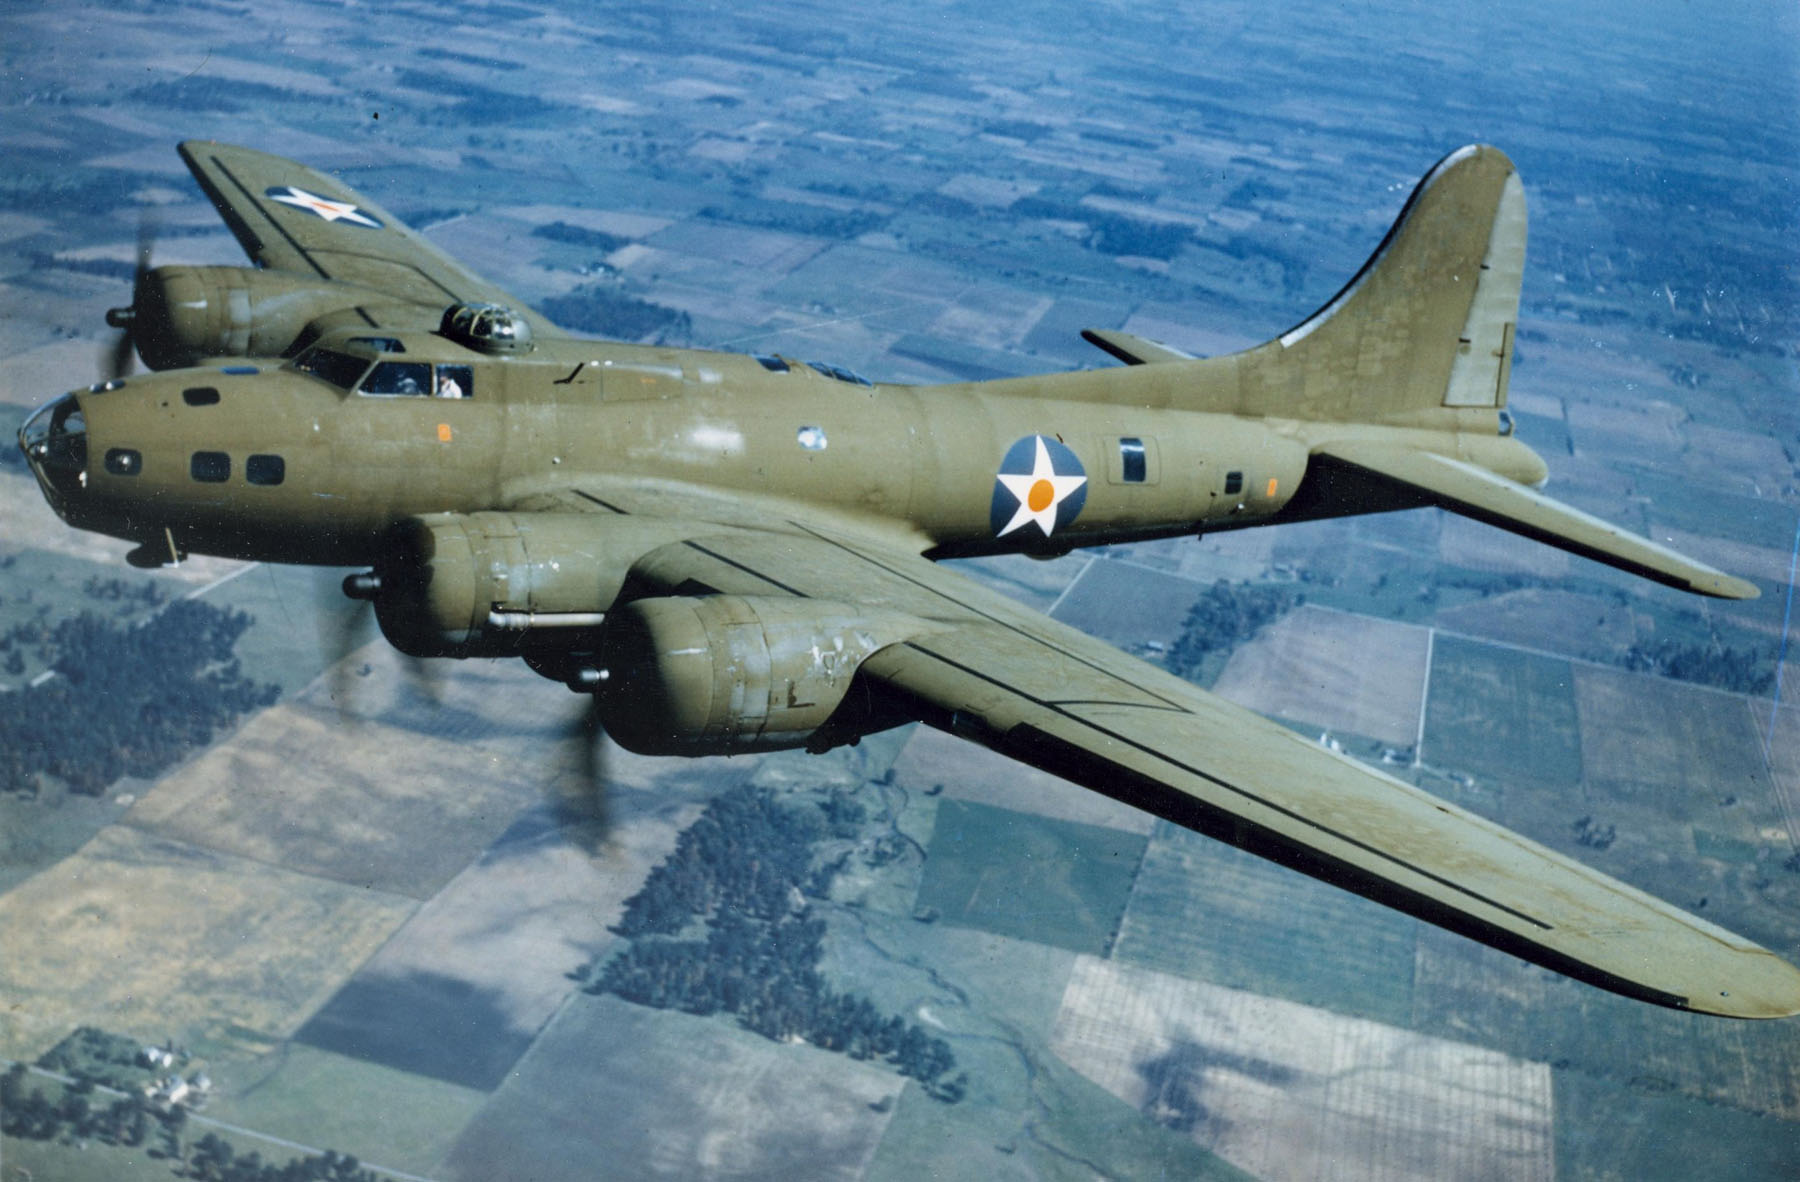 B17-Flying-Fortress.577f54cc86a04e4bac97fdb378673b8b.jpg